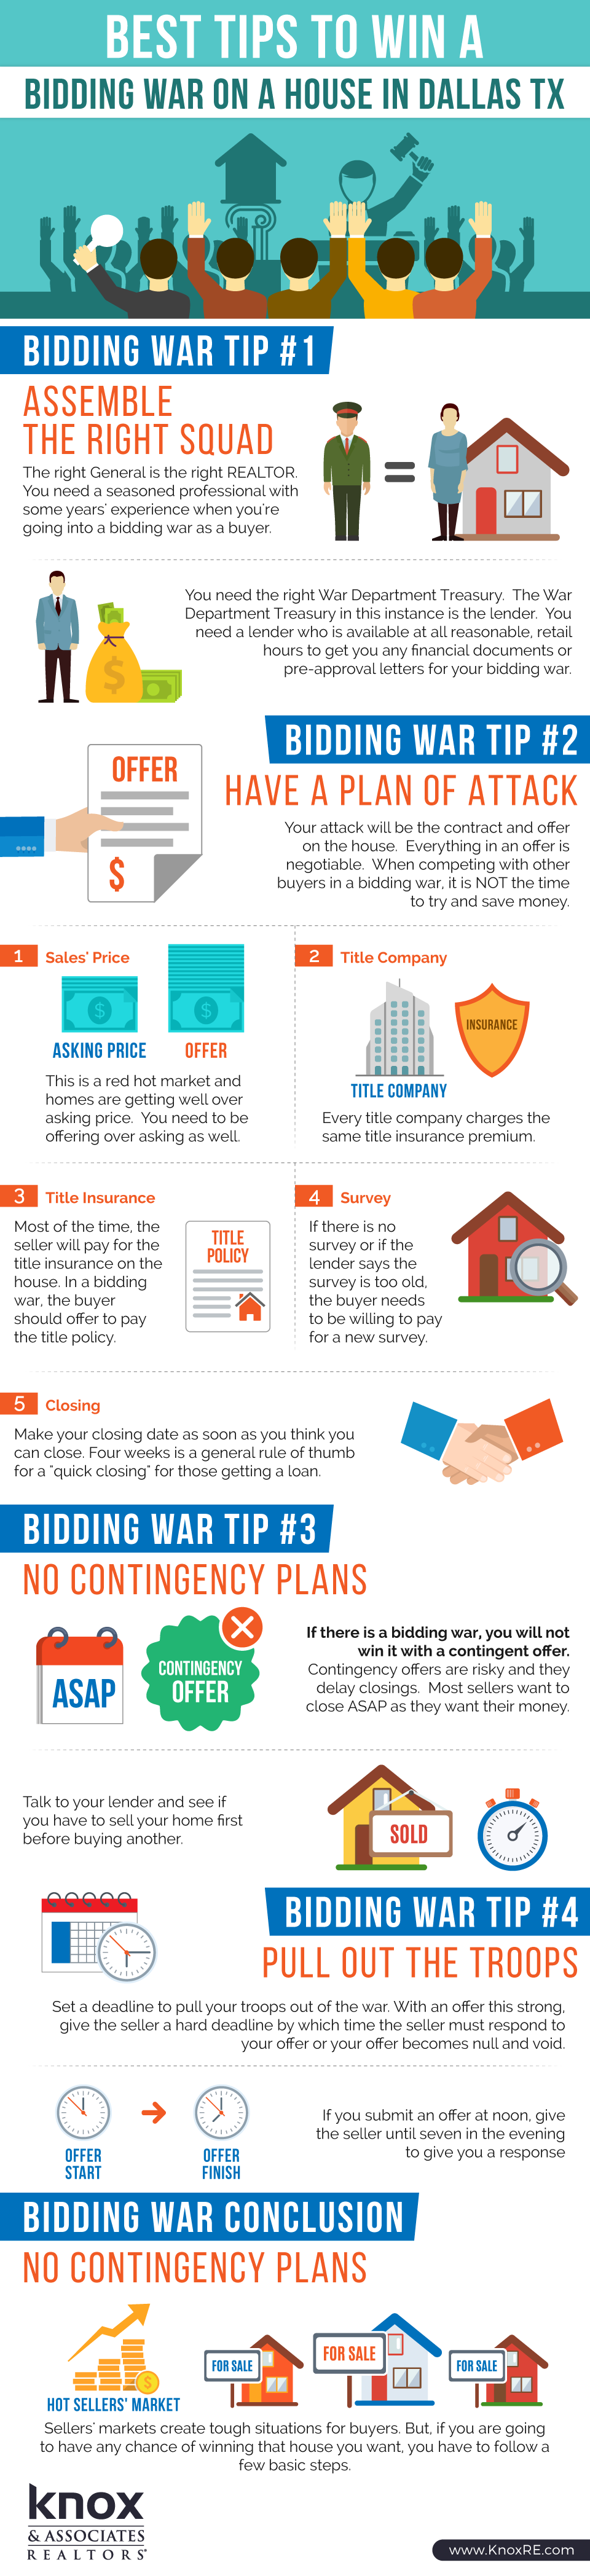 bid wars - how to win a bidding war